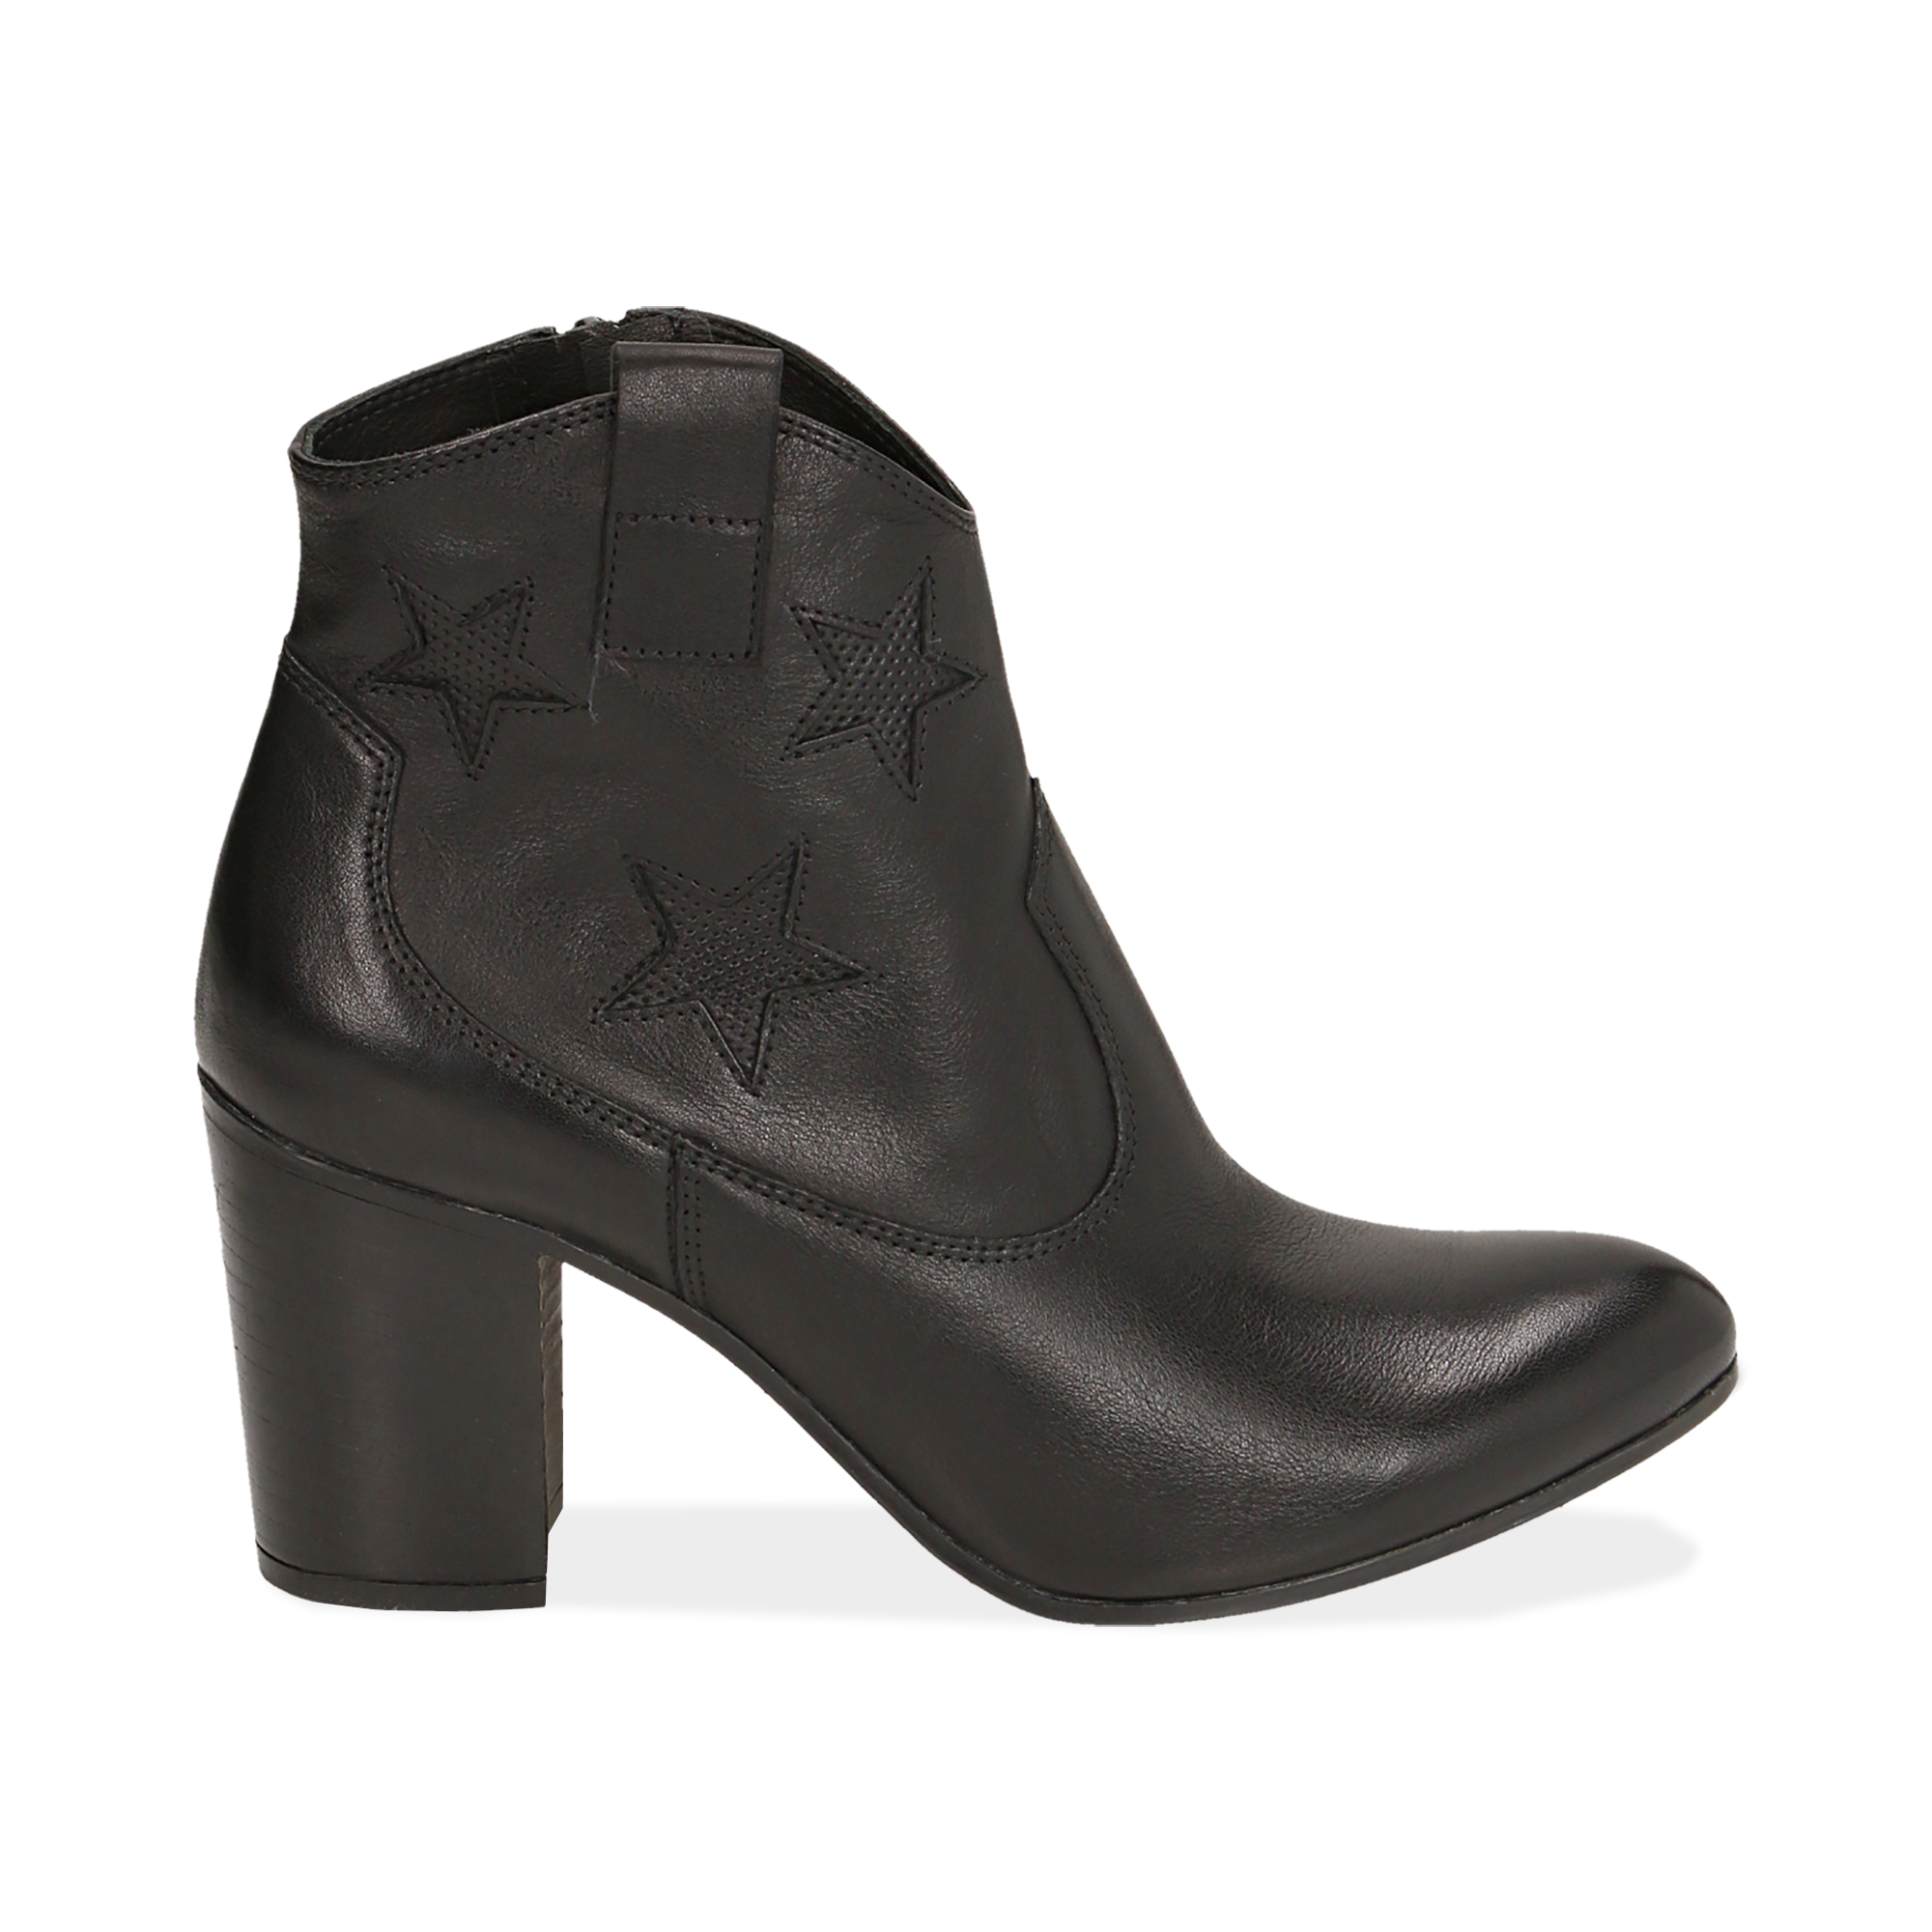 Ankle boots neri in pelle con stelle ricamate, tacco 7,50 cm